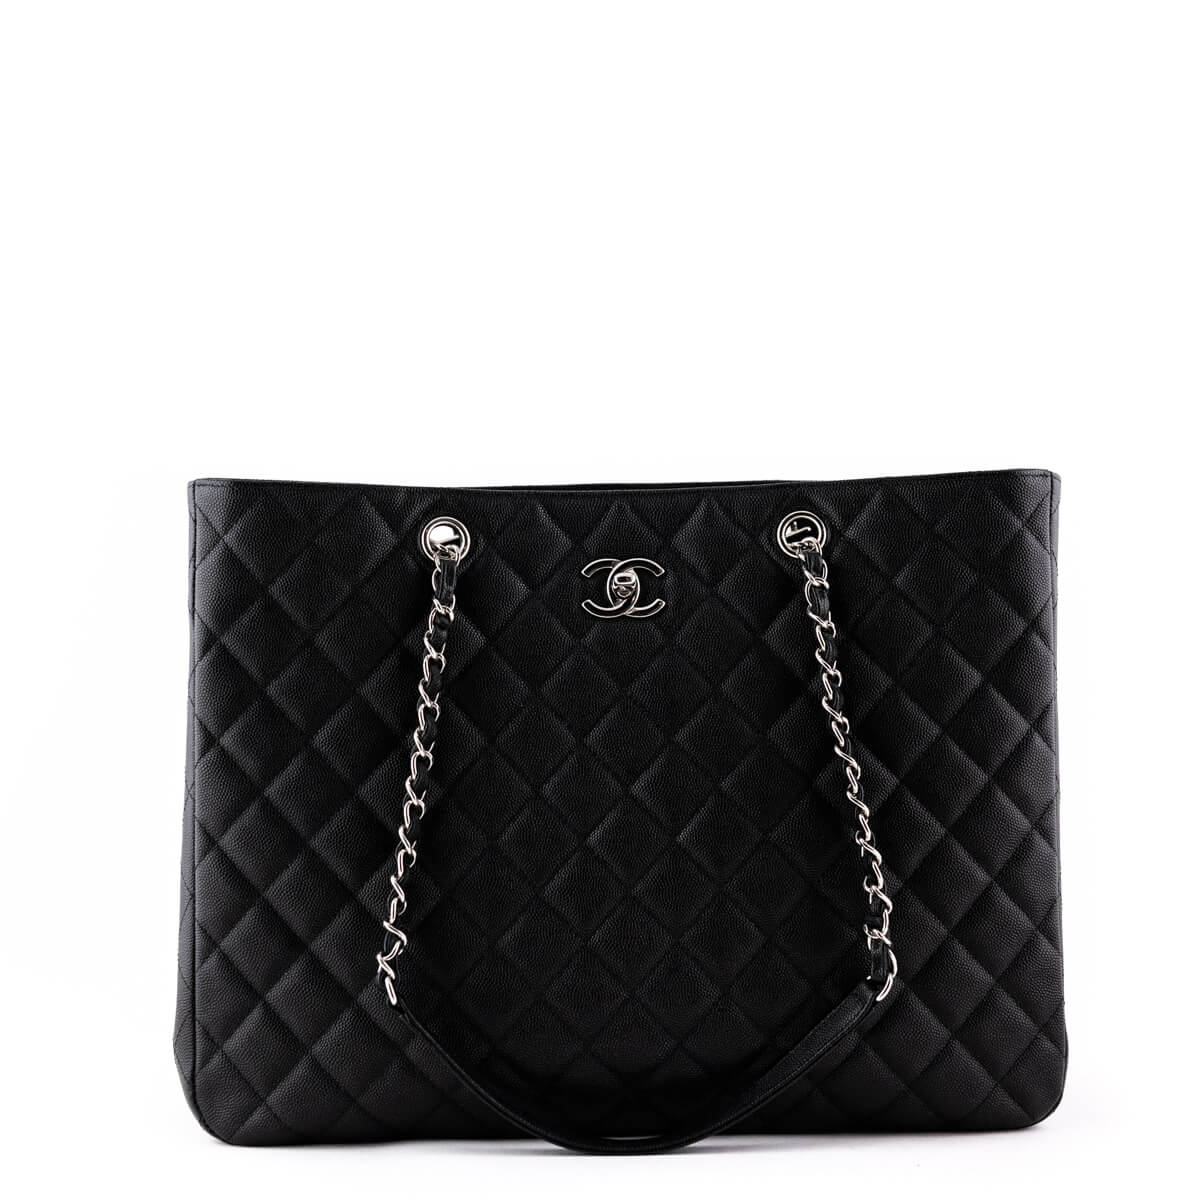 49749cf22a5d6f Chanel Black Caviar 2018 Timeless Tote SHW - LOVE that BAG - Preowned  Authentic Designer Handbags ...